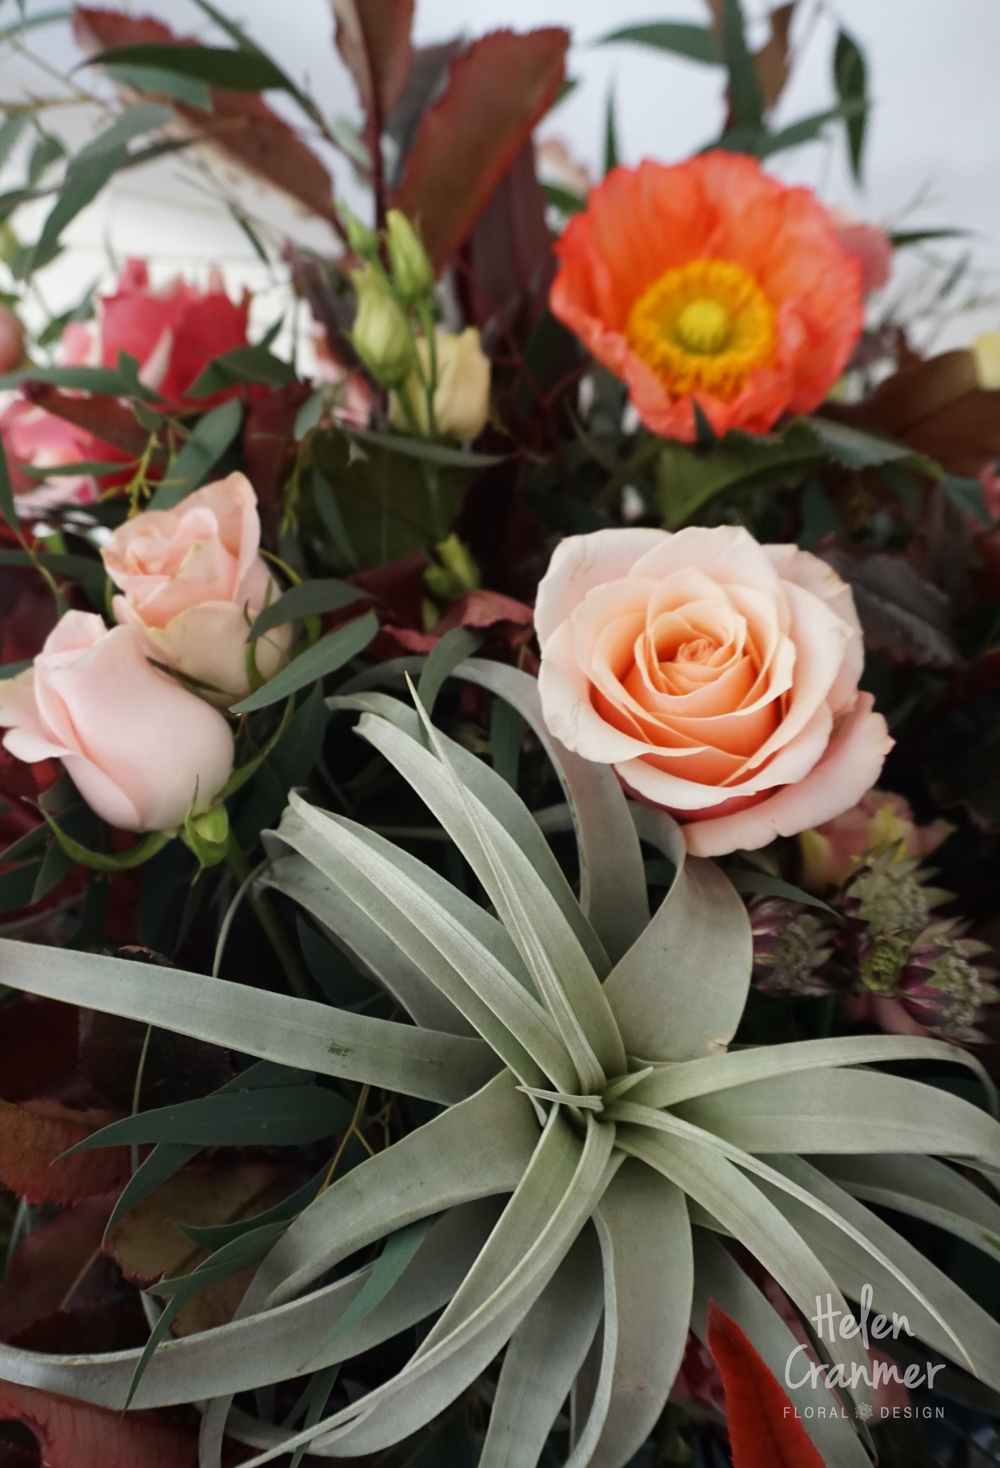 Helen Cranmer Floral Design Flowers Most curious wedding fair (24 of 64).jpg